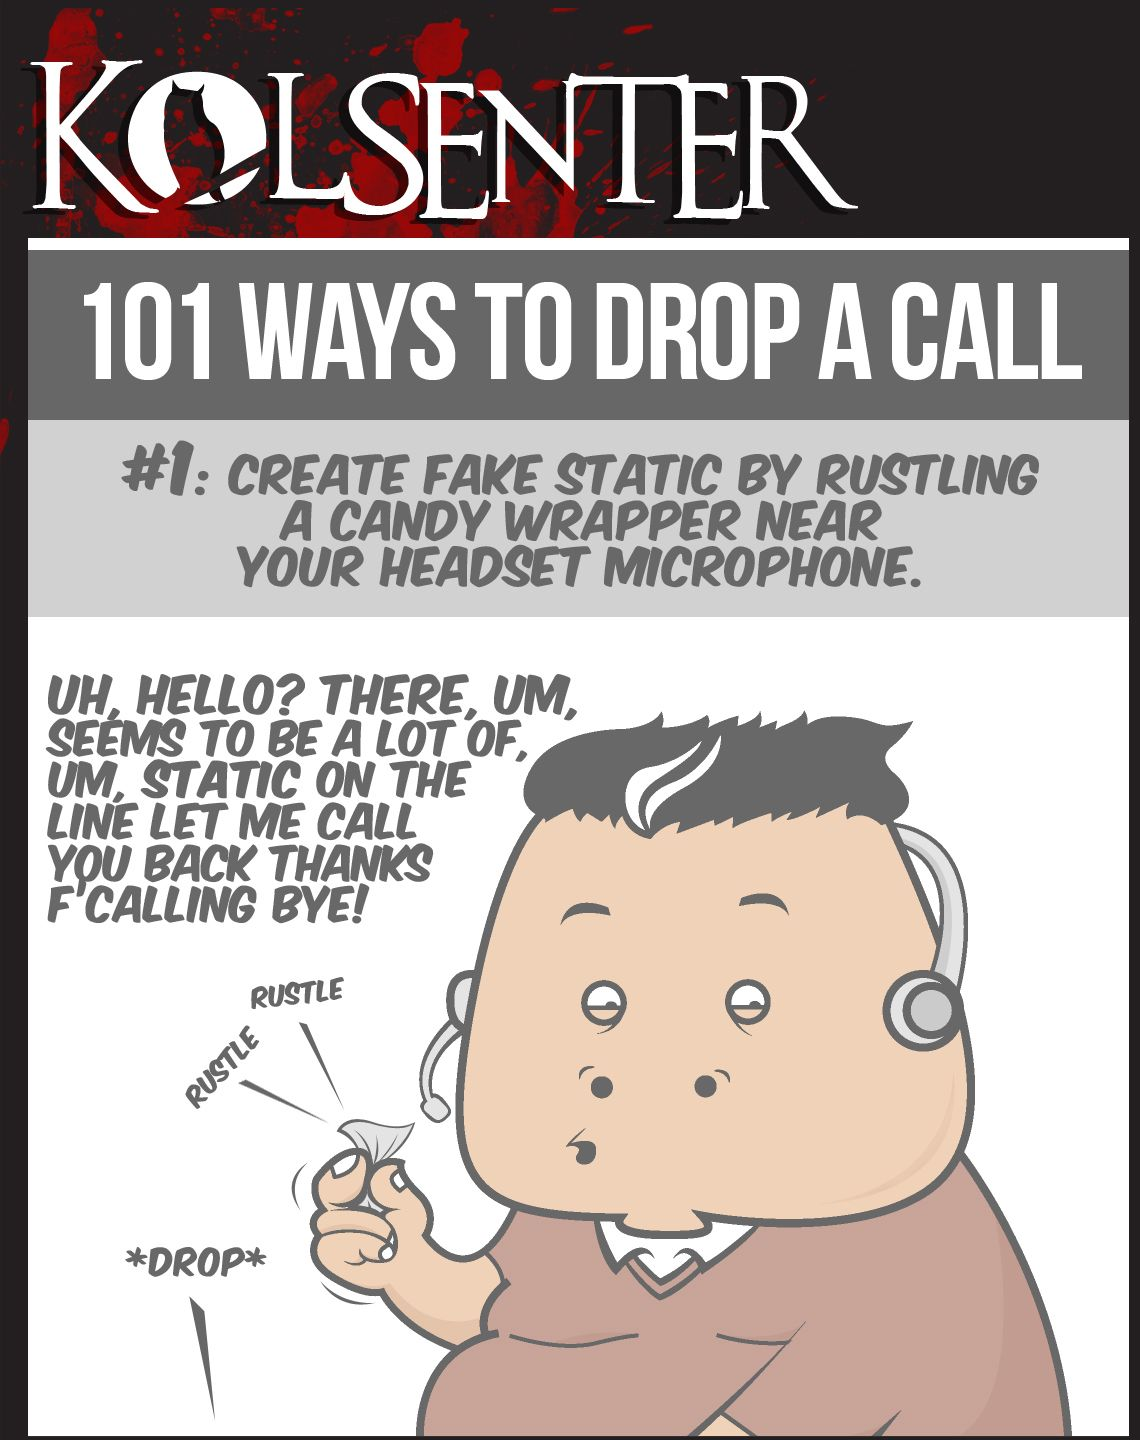 Pinoy Call Center Humor Cartoons images | Humor ...